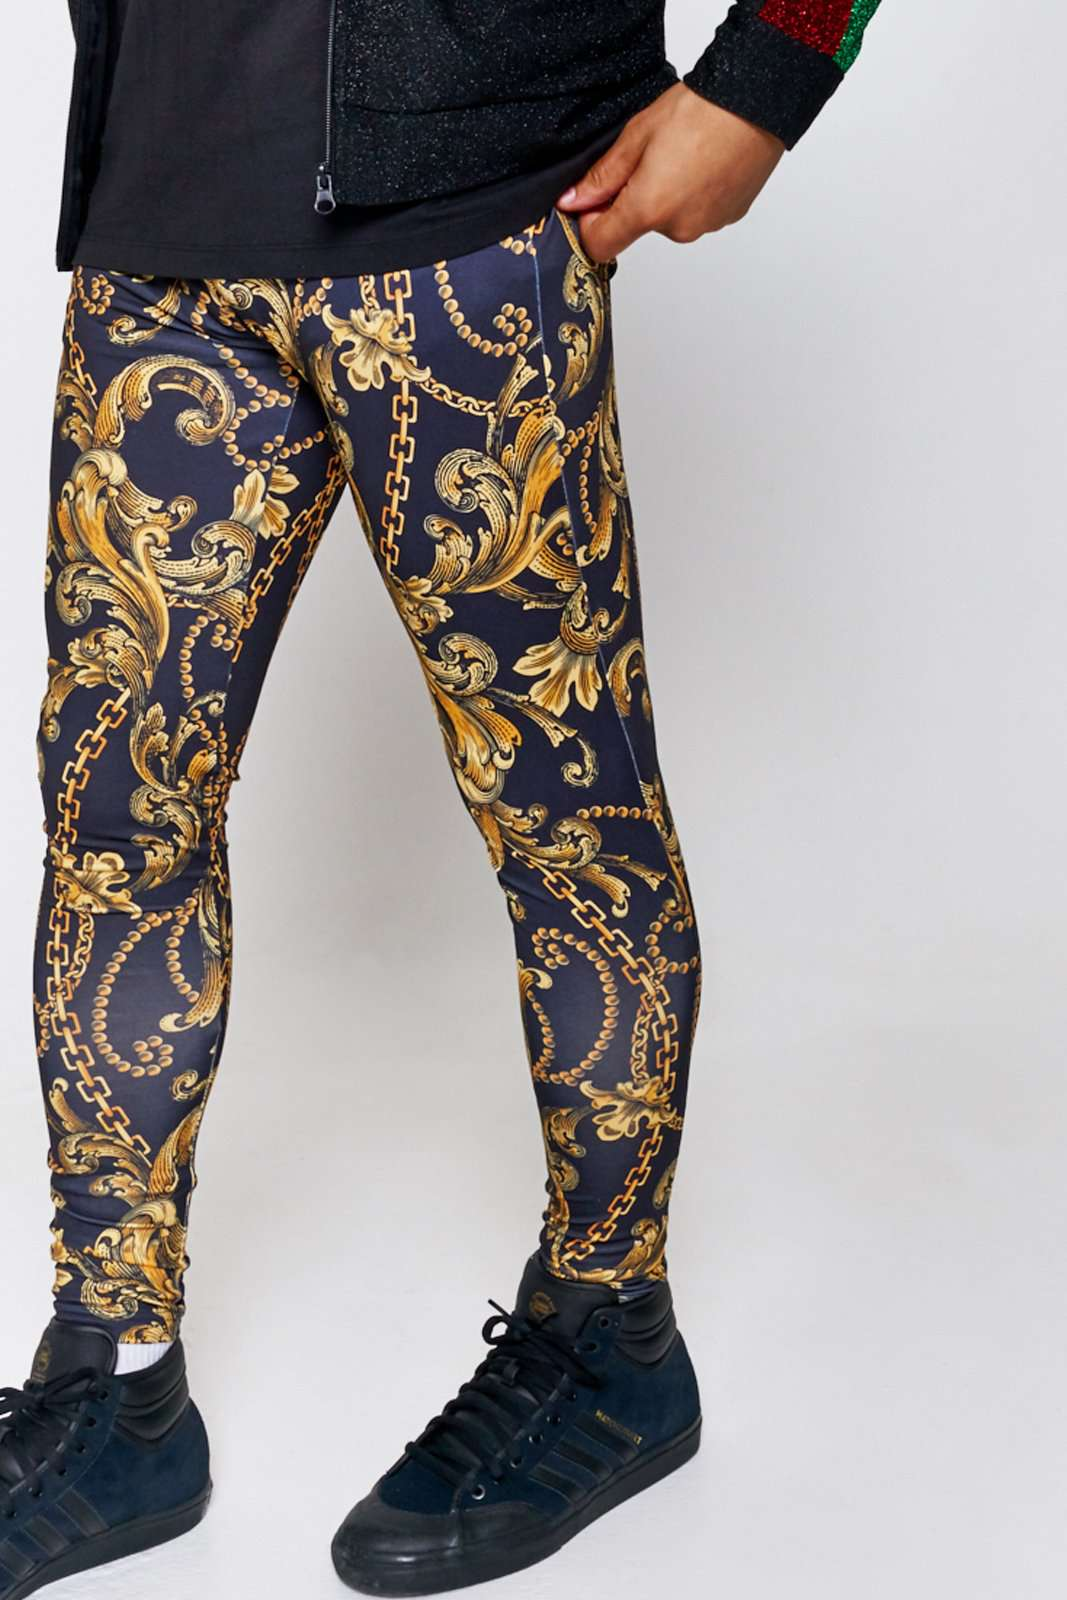 Baroque Chain Festival Meggings